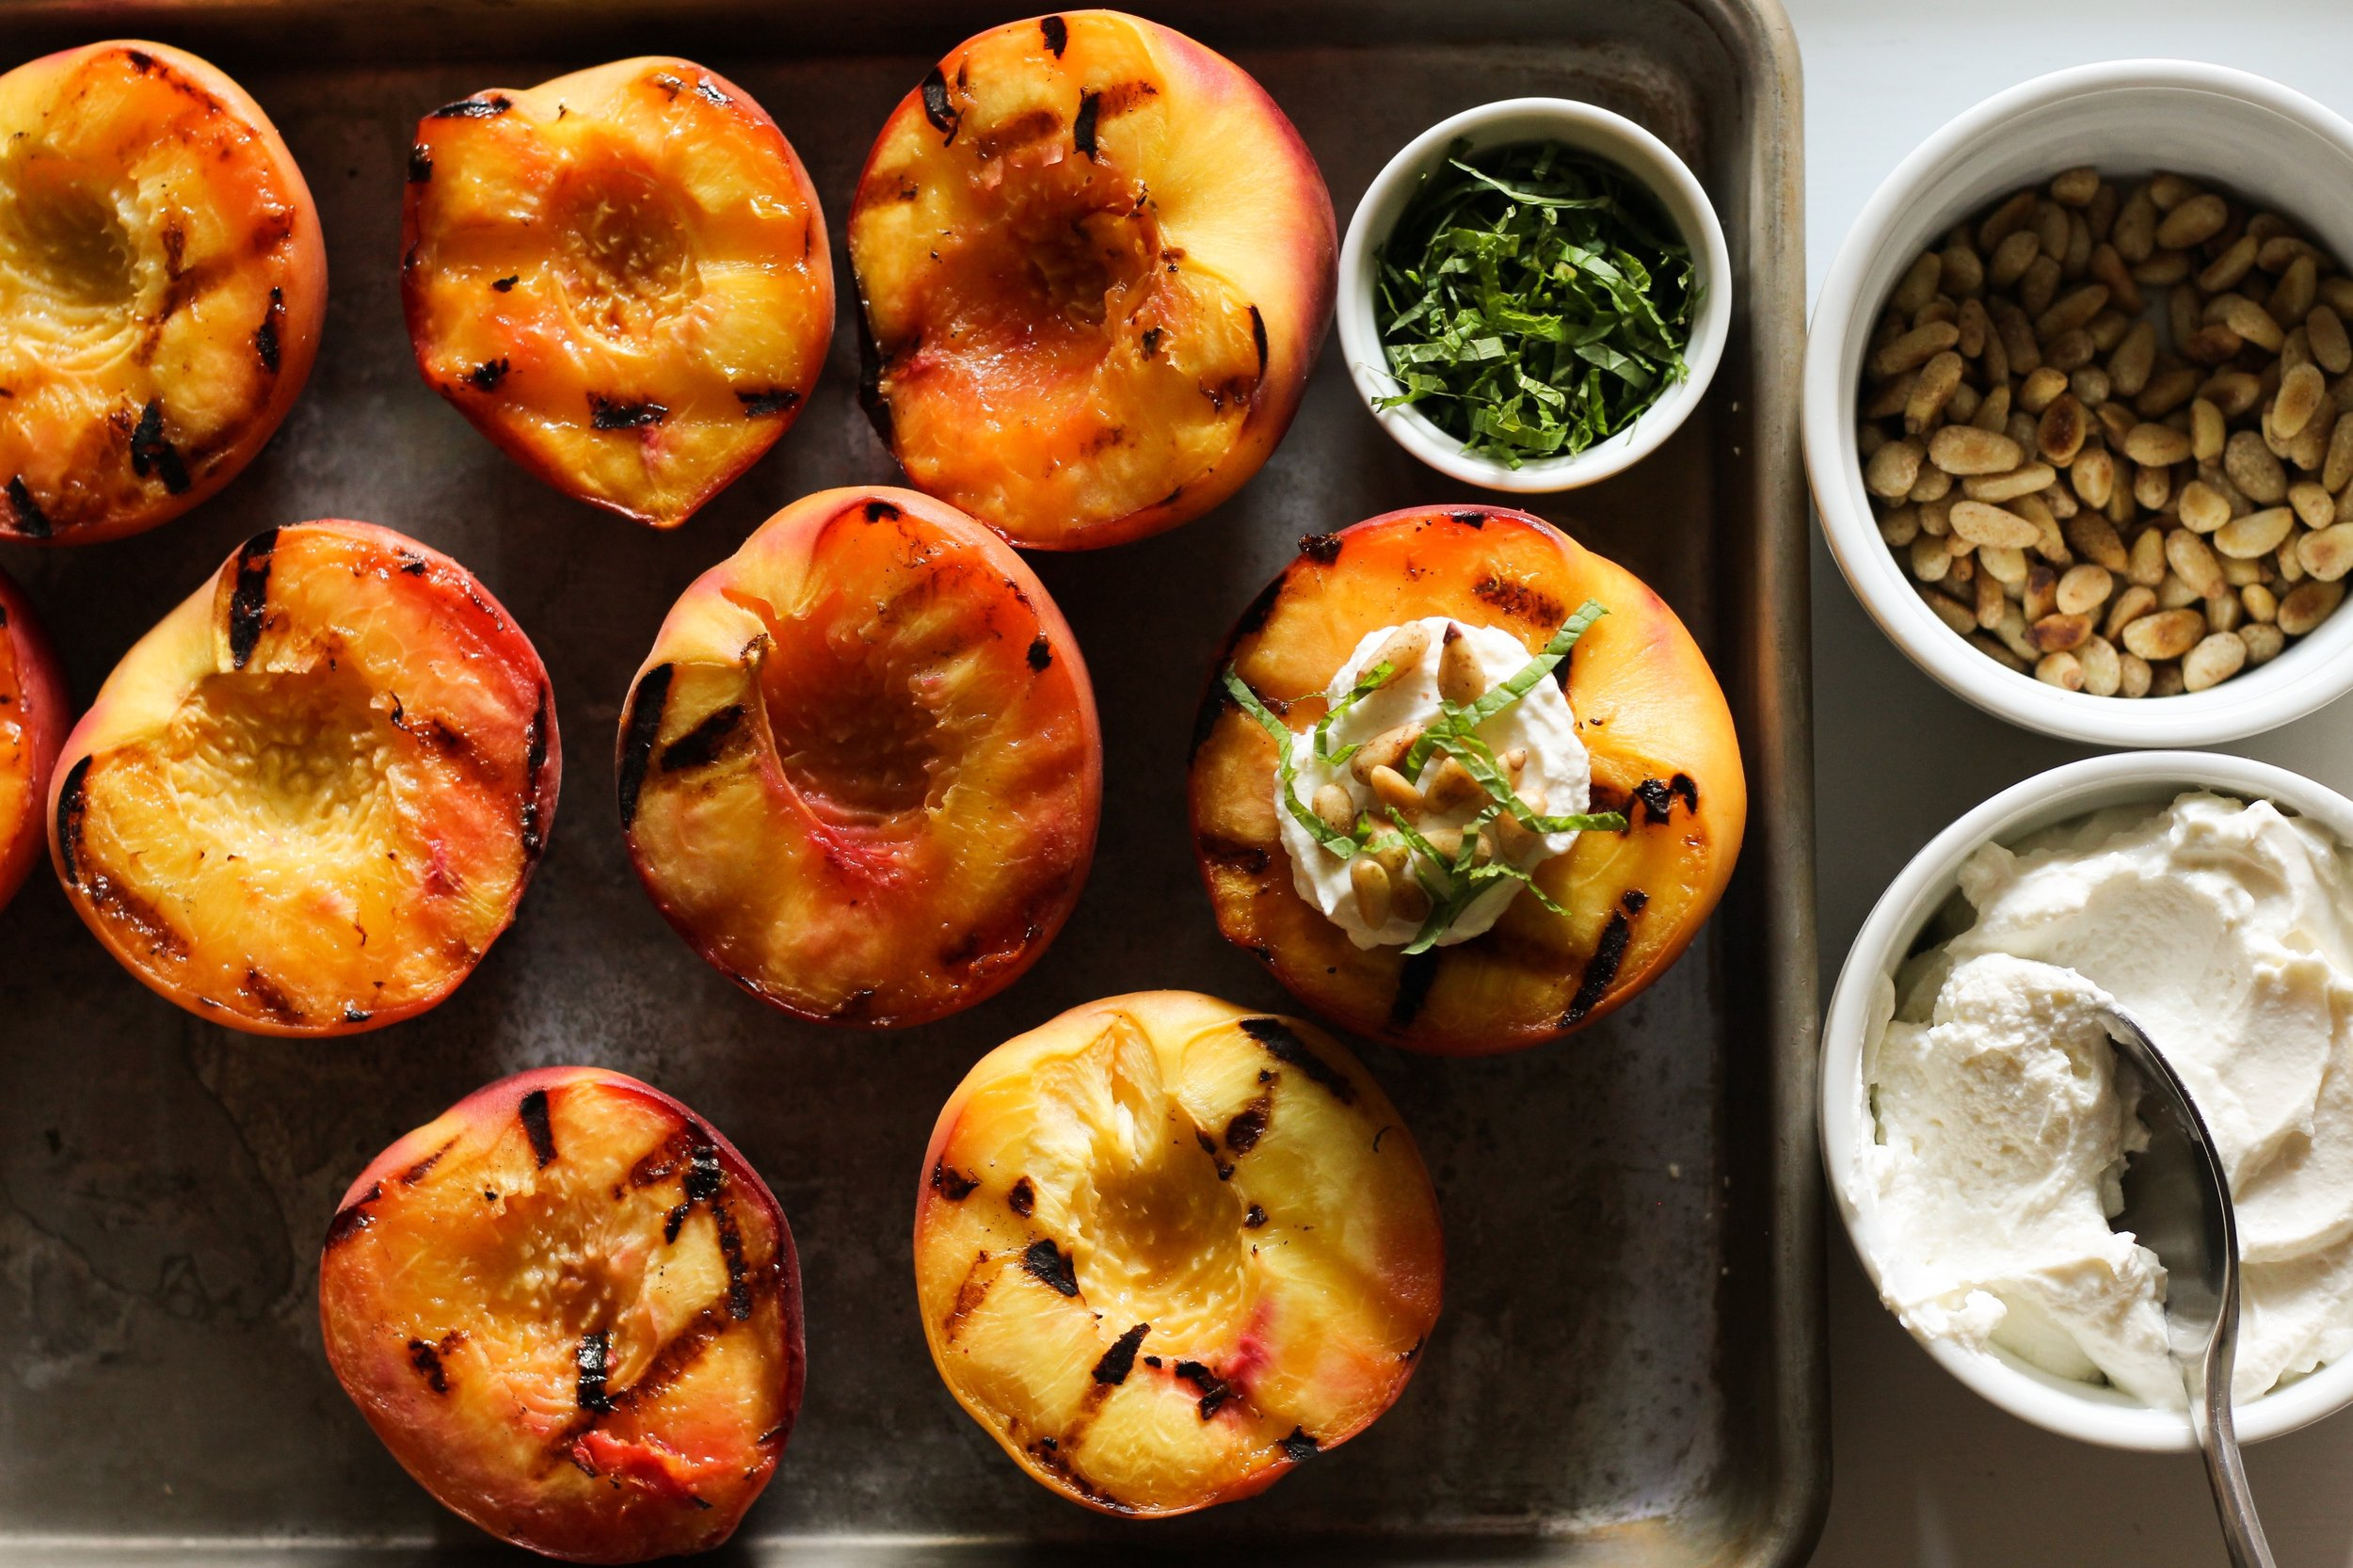 grilled peaches with pine nuts, labneh, and mint